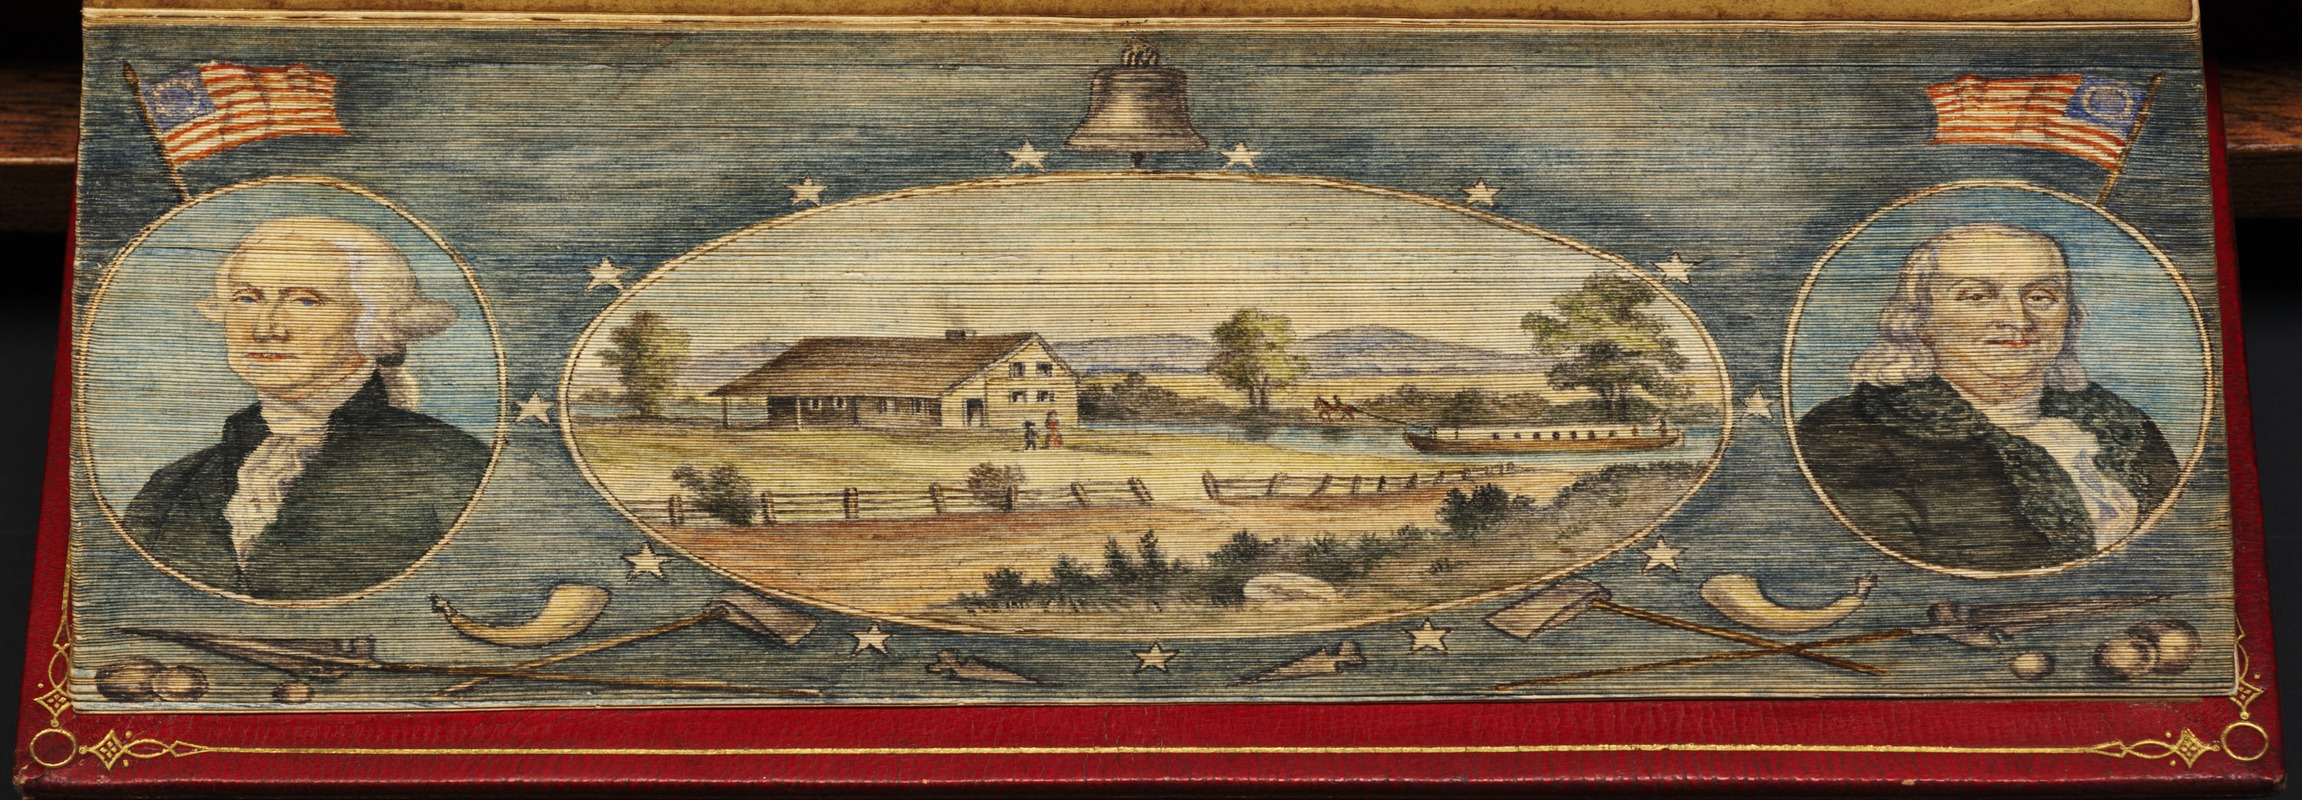 Portraits of George Washington and Benjamin Franklin alongside view of a house